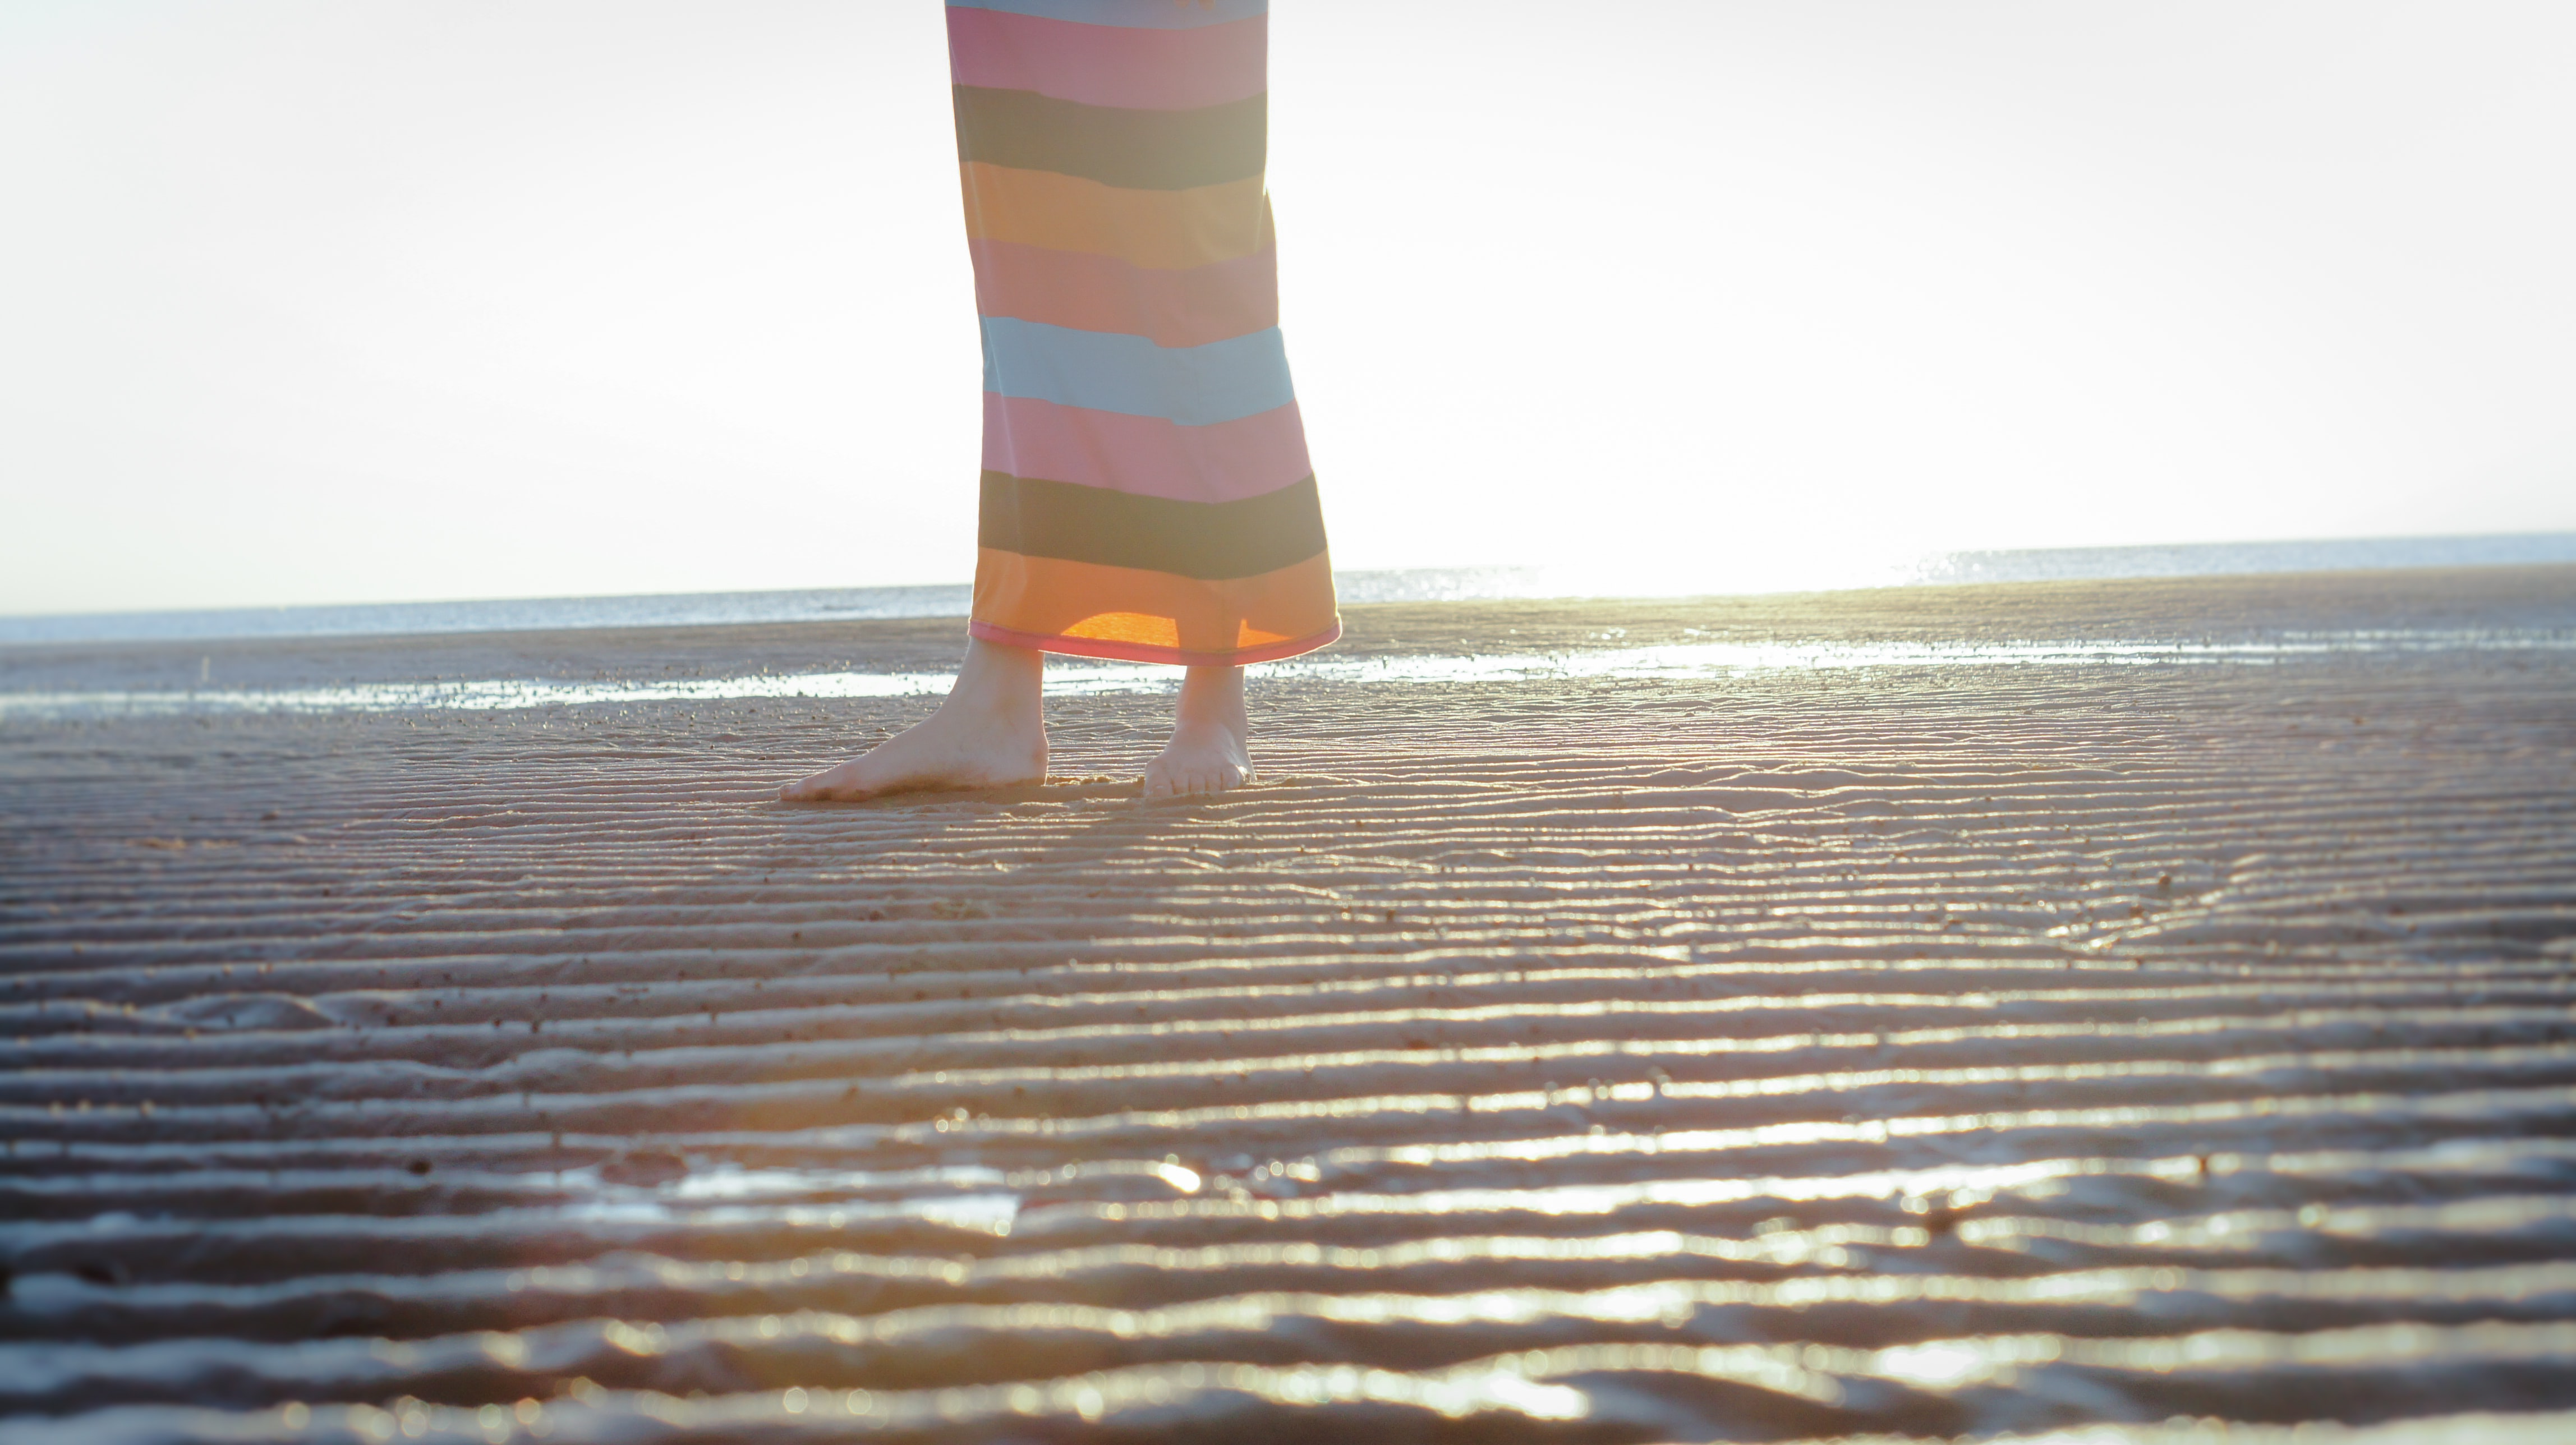 View of woman's legs in a colorfully striped outfit standing on the wet sand beach in Villas